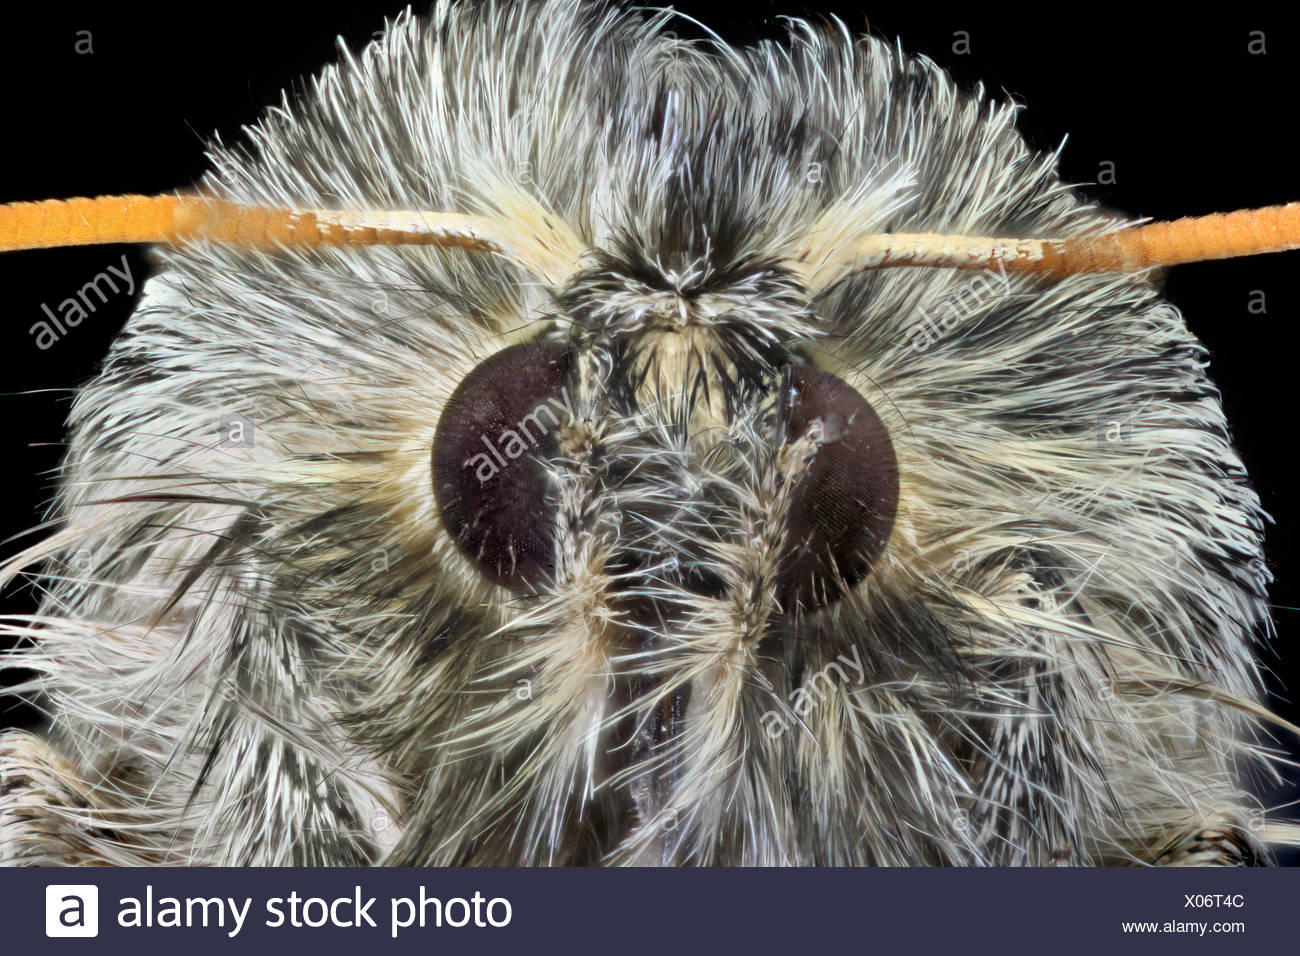 macro shot of the compound eyes of a moth - Stock Image